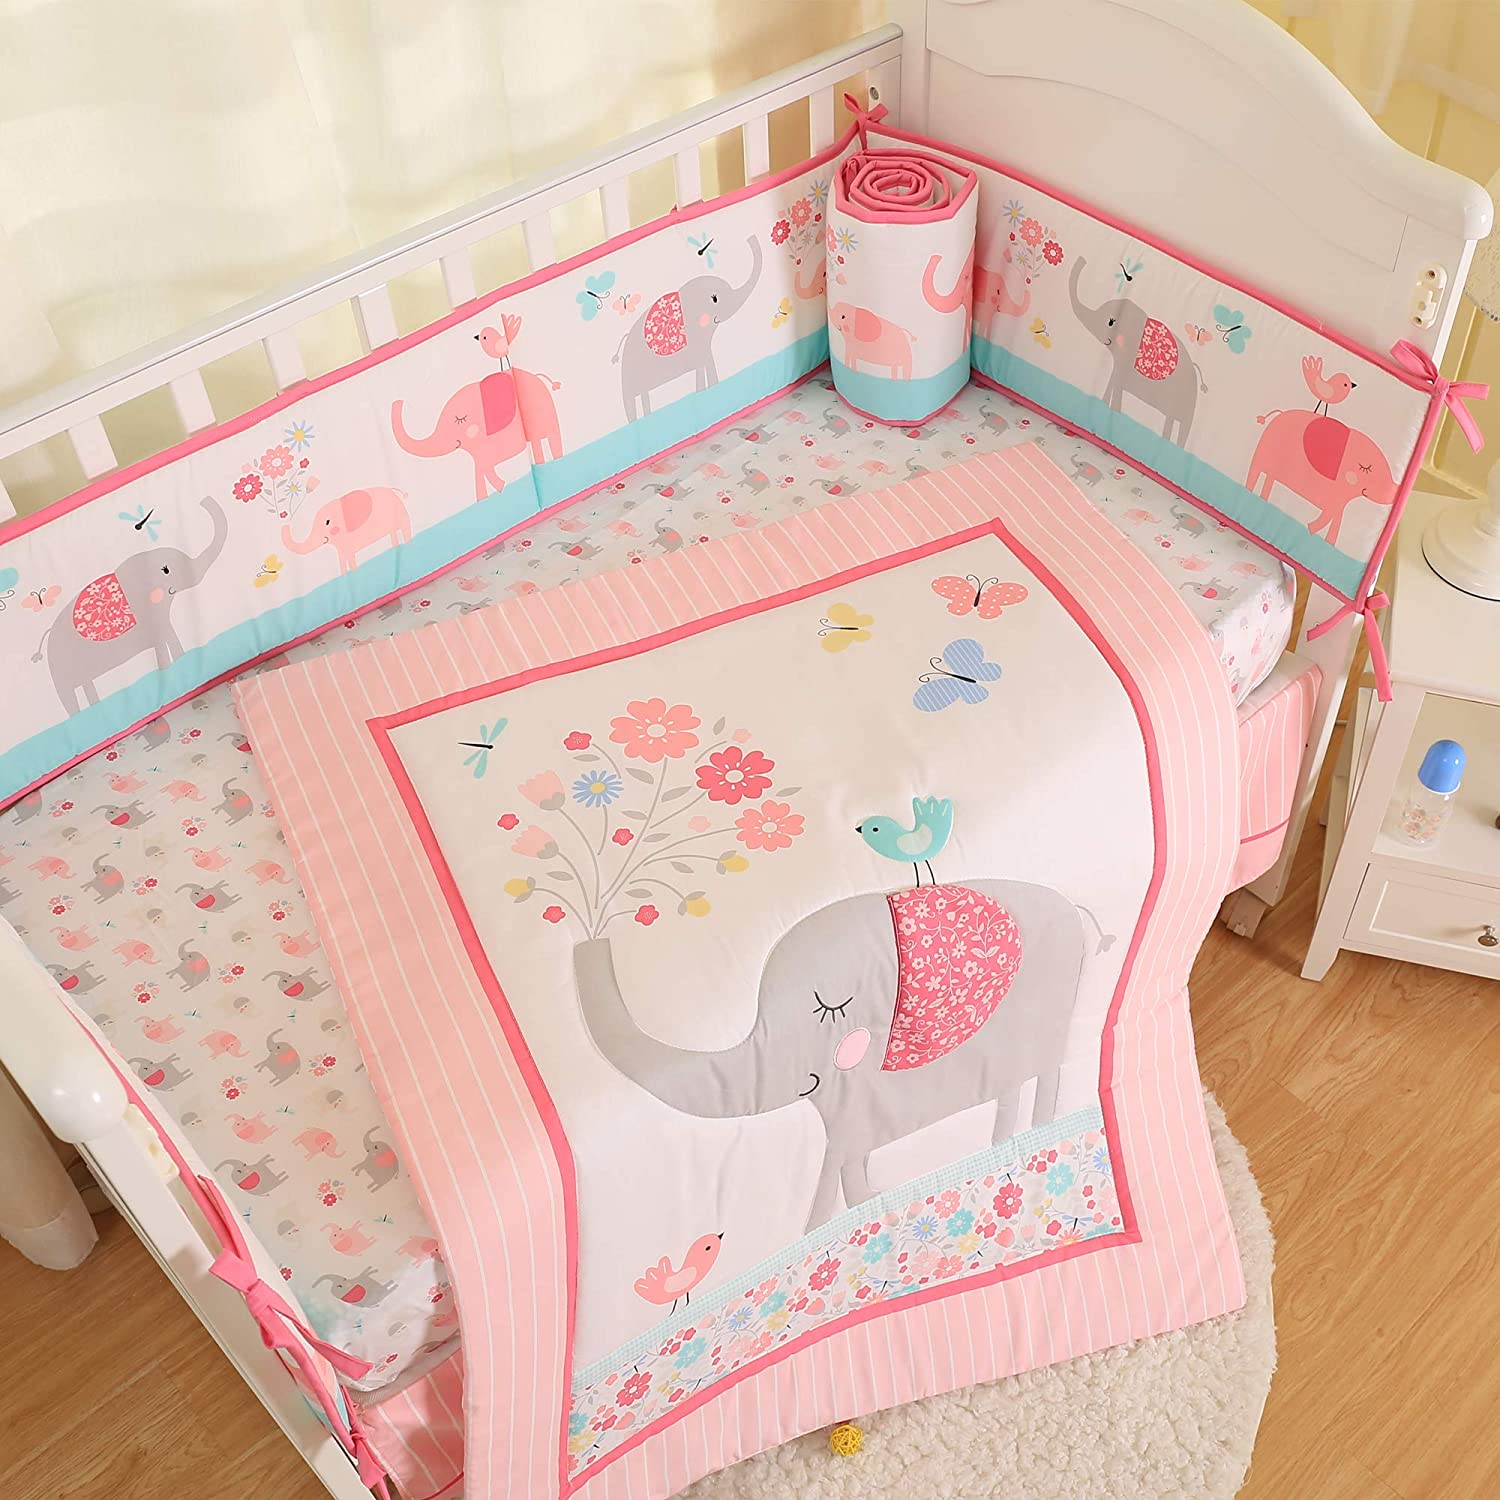 Brandream Pink Elephant Crib Bedding Sets for Baby Girls | 3 Piece Nursery Set | Crib Comforter, Fitted Crib Sheet, Crib Skirt Included with Garden Birds Floral Design